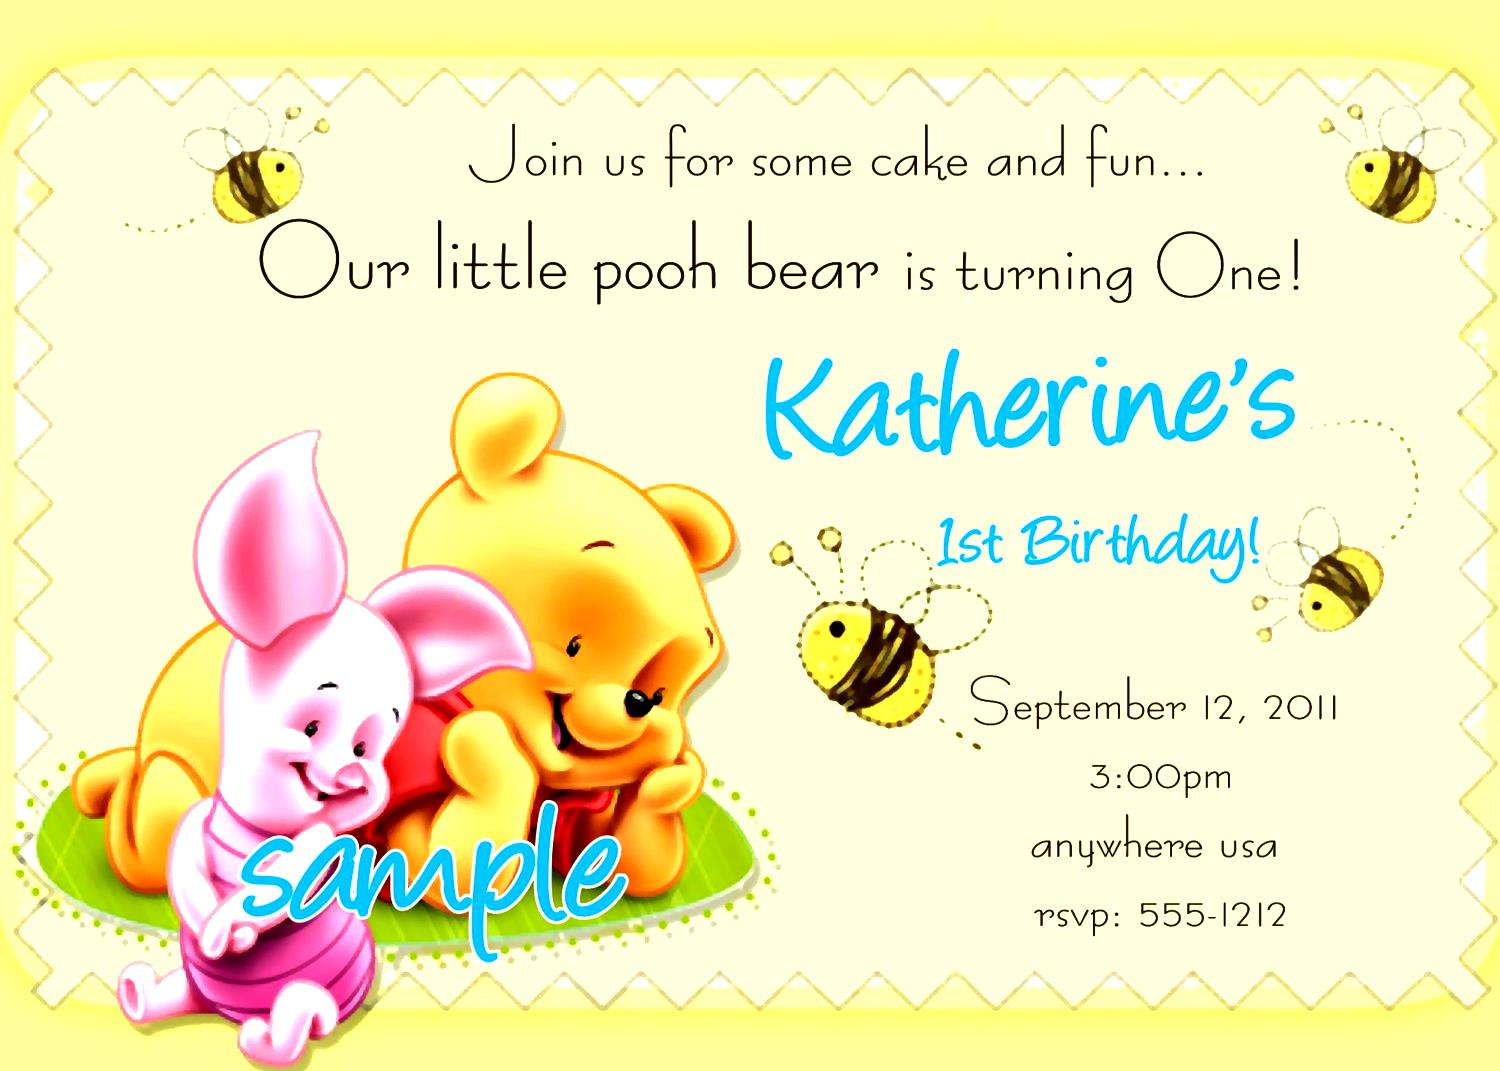 Birthday card invitation templates trattorialeondoro filmwisefo